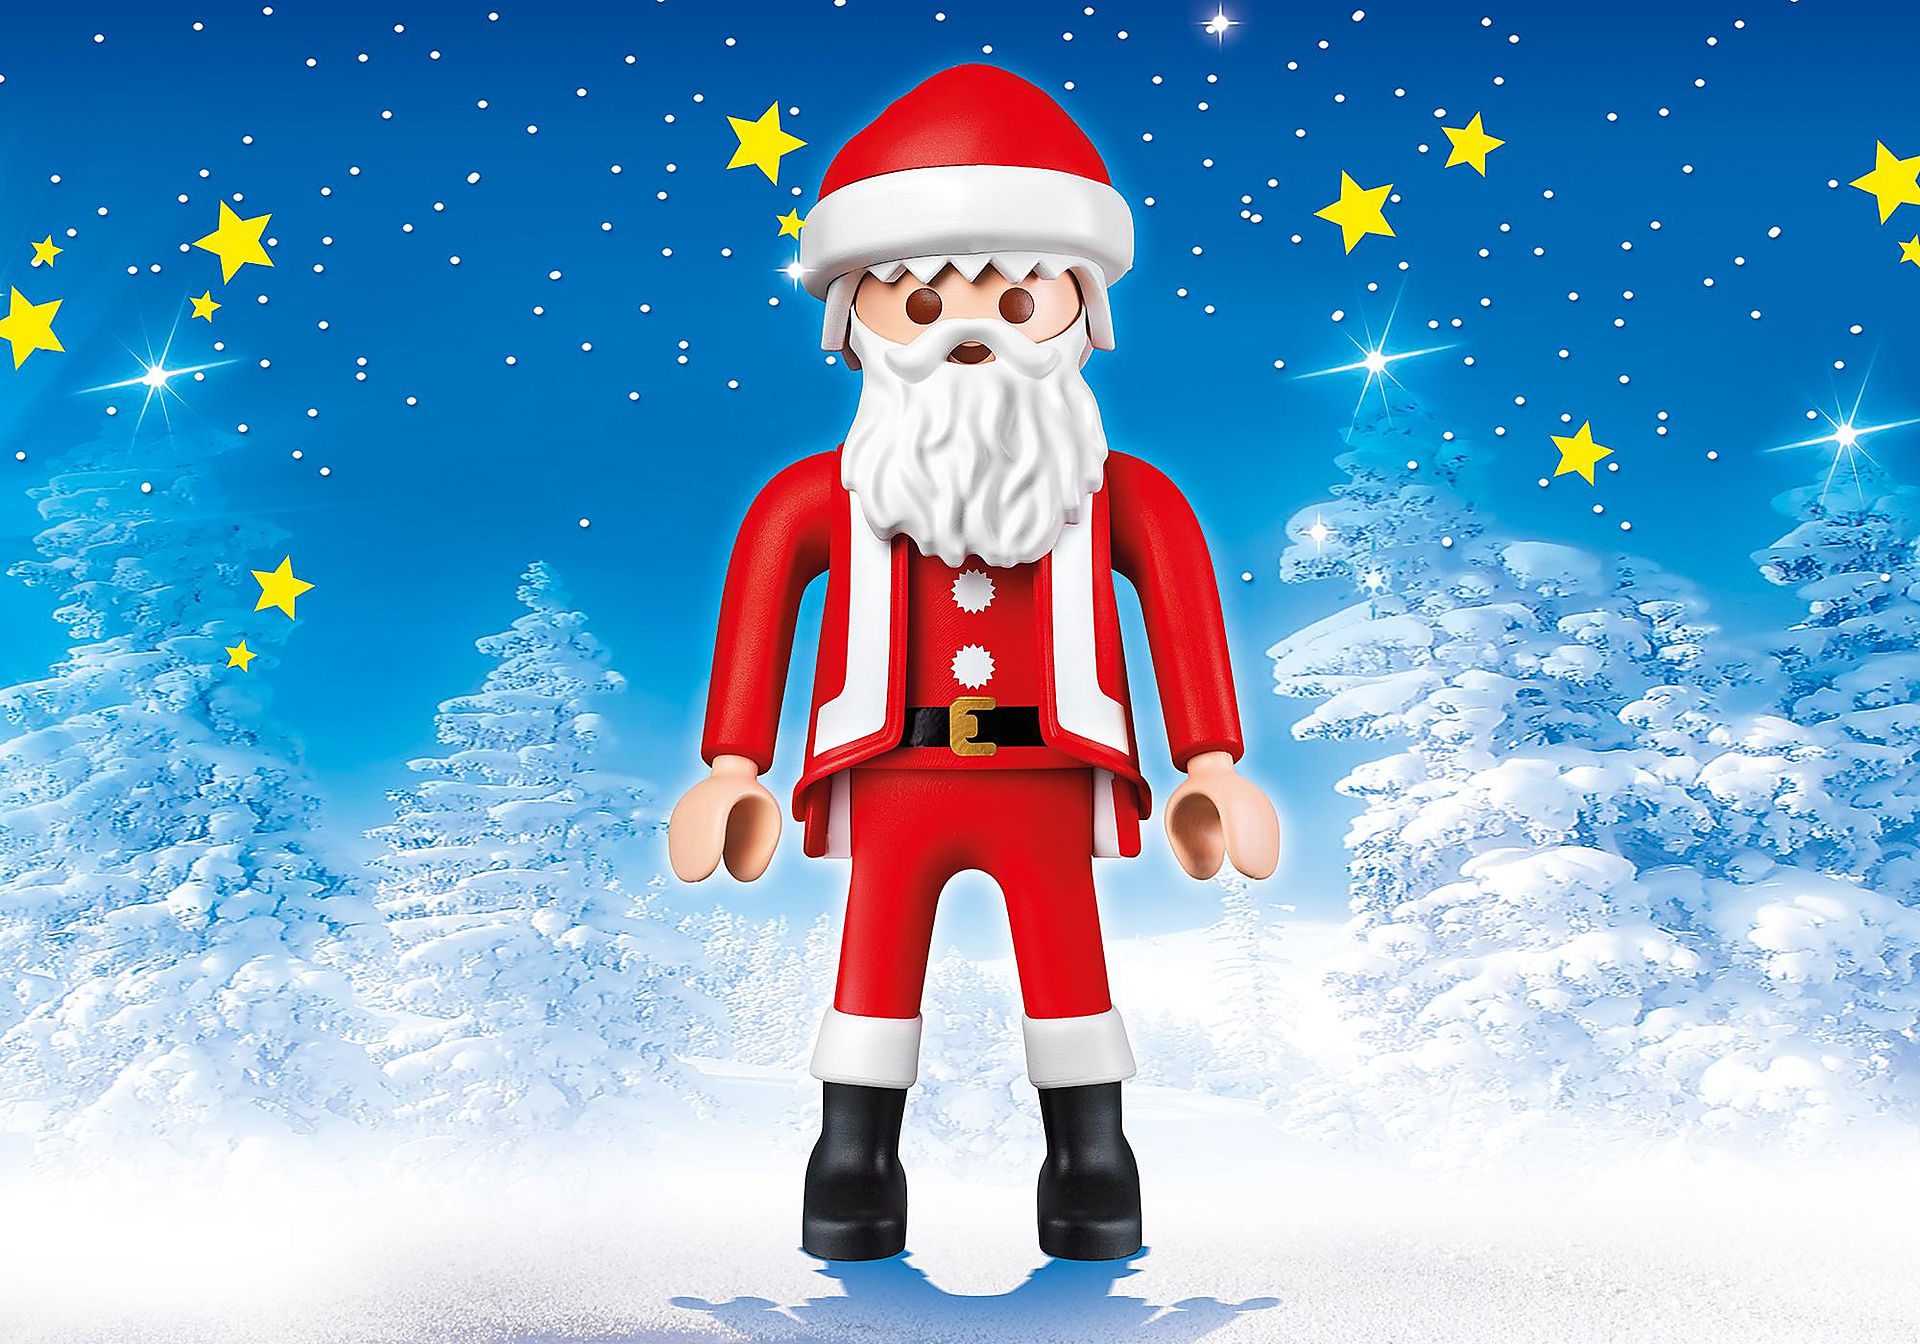 6629 PLAYMOBIL Babbo Natale giocattolo zoom image3